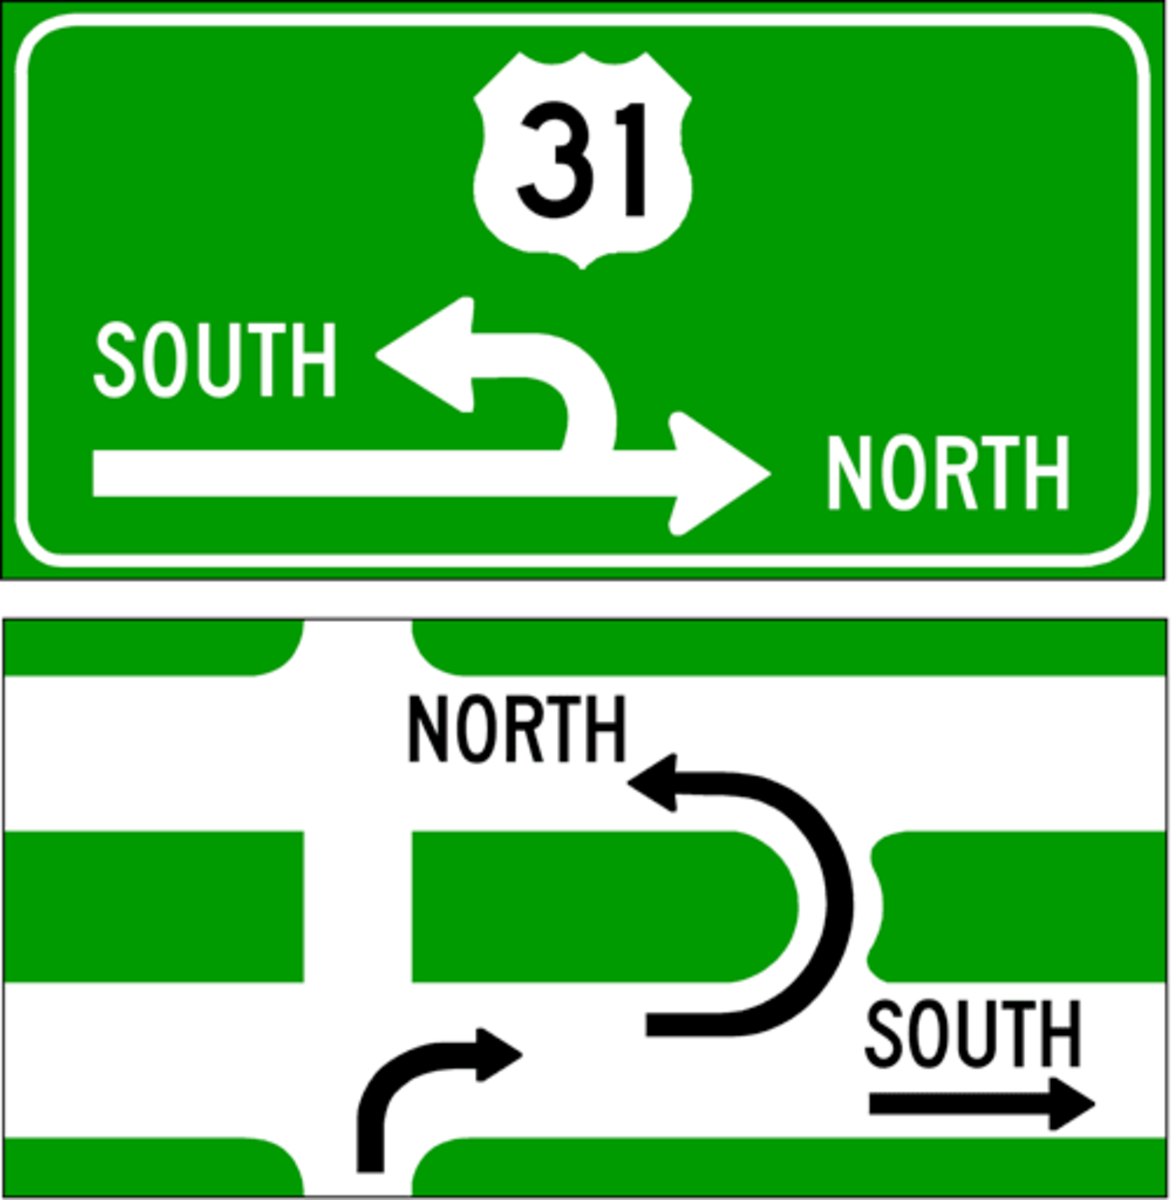 The Michigan Left Turn on Red